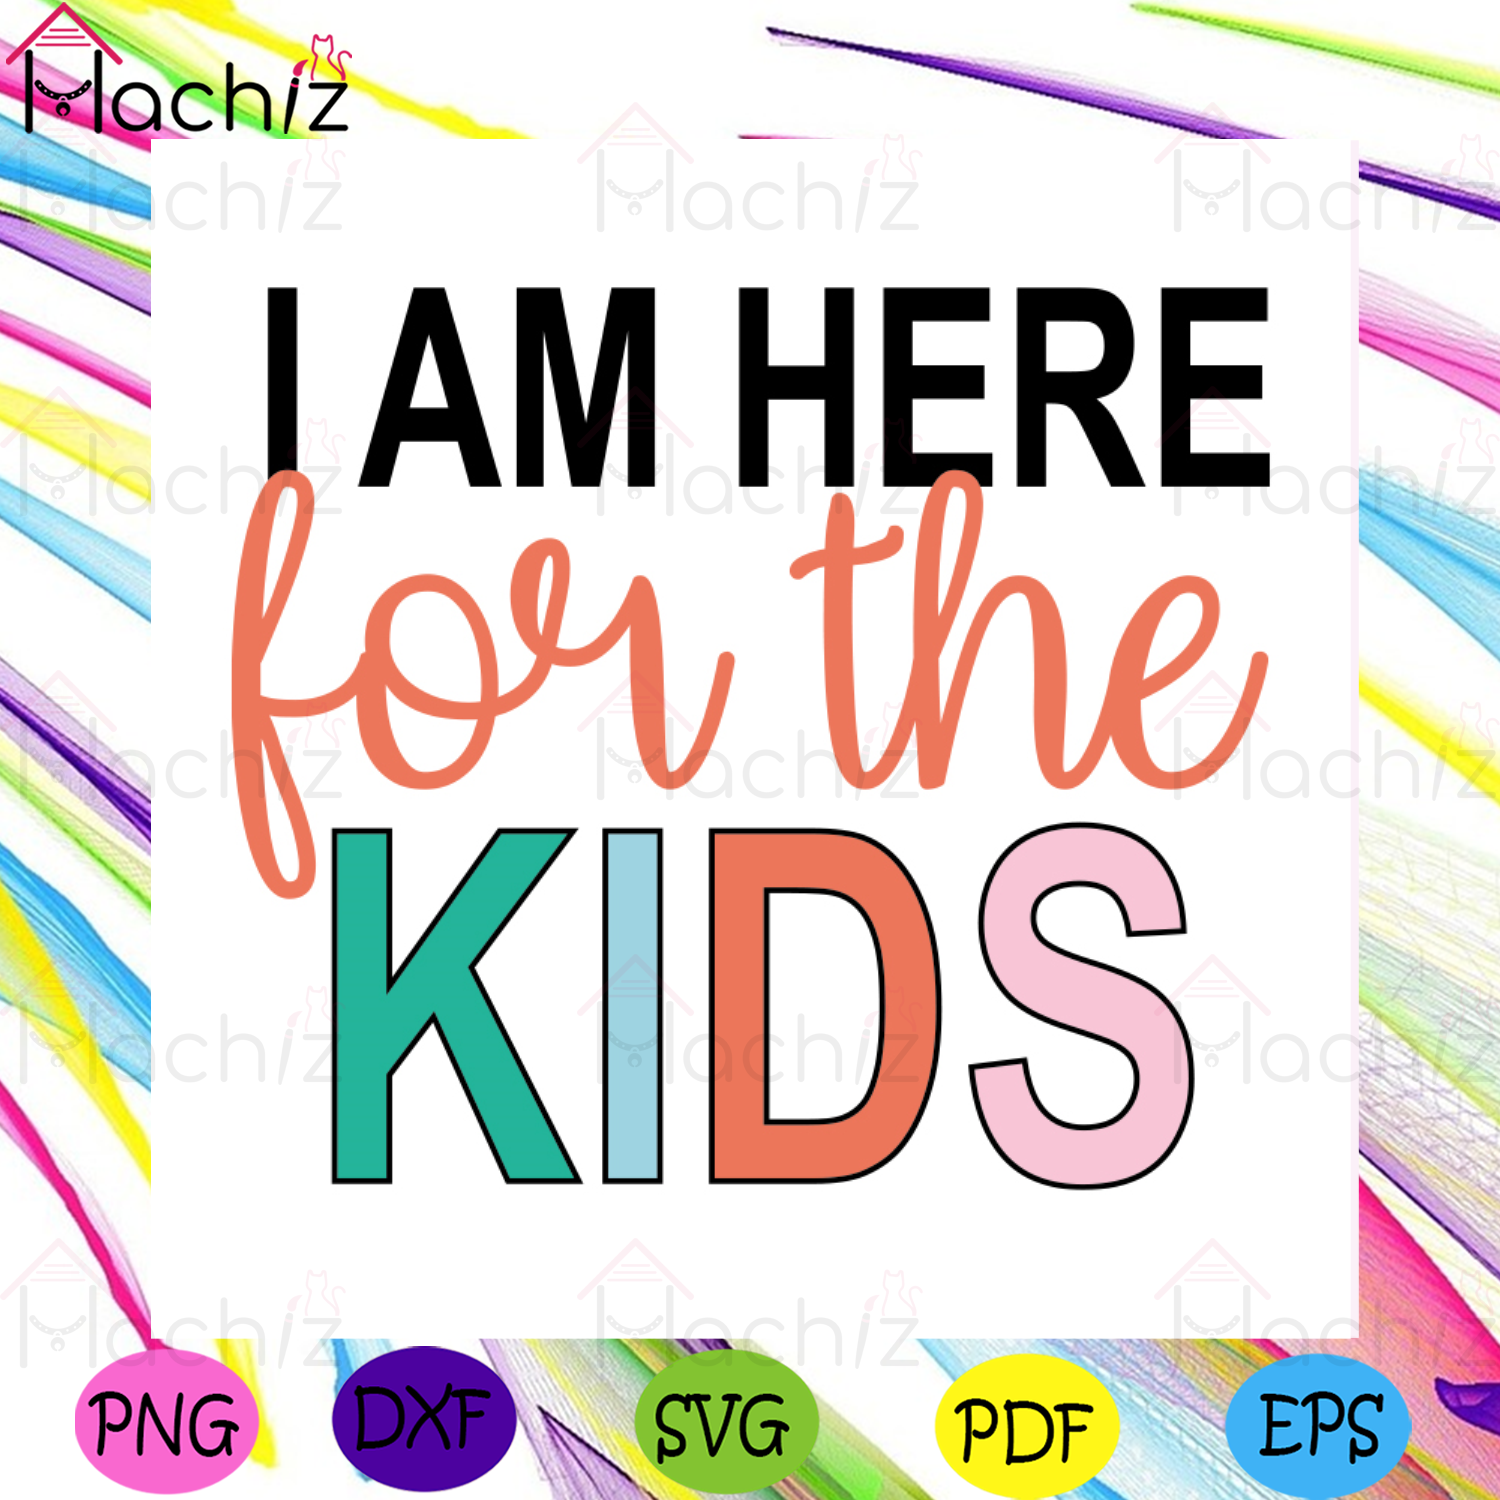 I Am Here For The Kids Svg, Funny Svg, Happy Funny Svg, Happy Funny Kids Svg, Here For The Kids Svg, Teacher Svg, Family Svg, Mother Svg, Father Svg, Kids Svg, Gift For Kids Svg, Funny Shirt Svg, Children Mom Svg, Kids Dad Svg